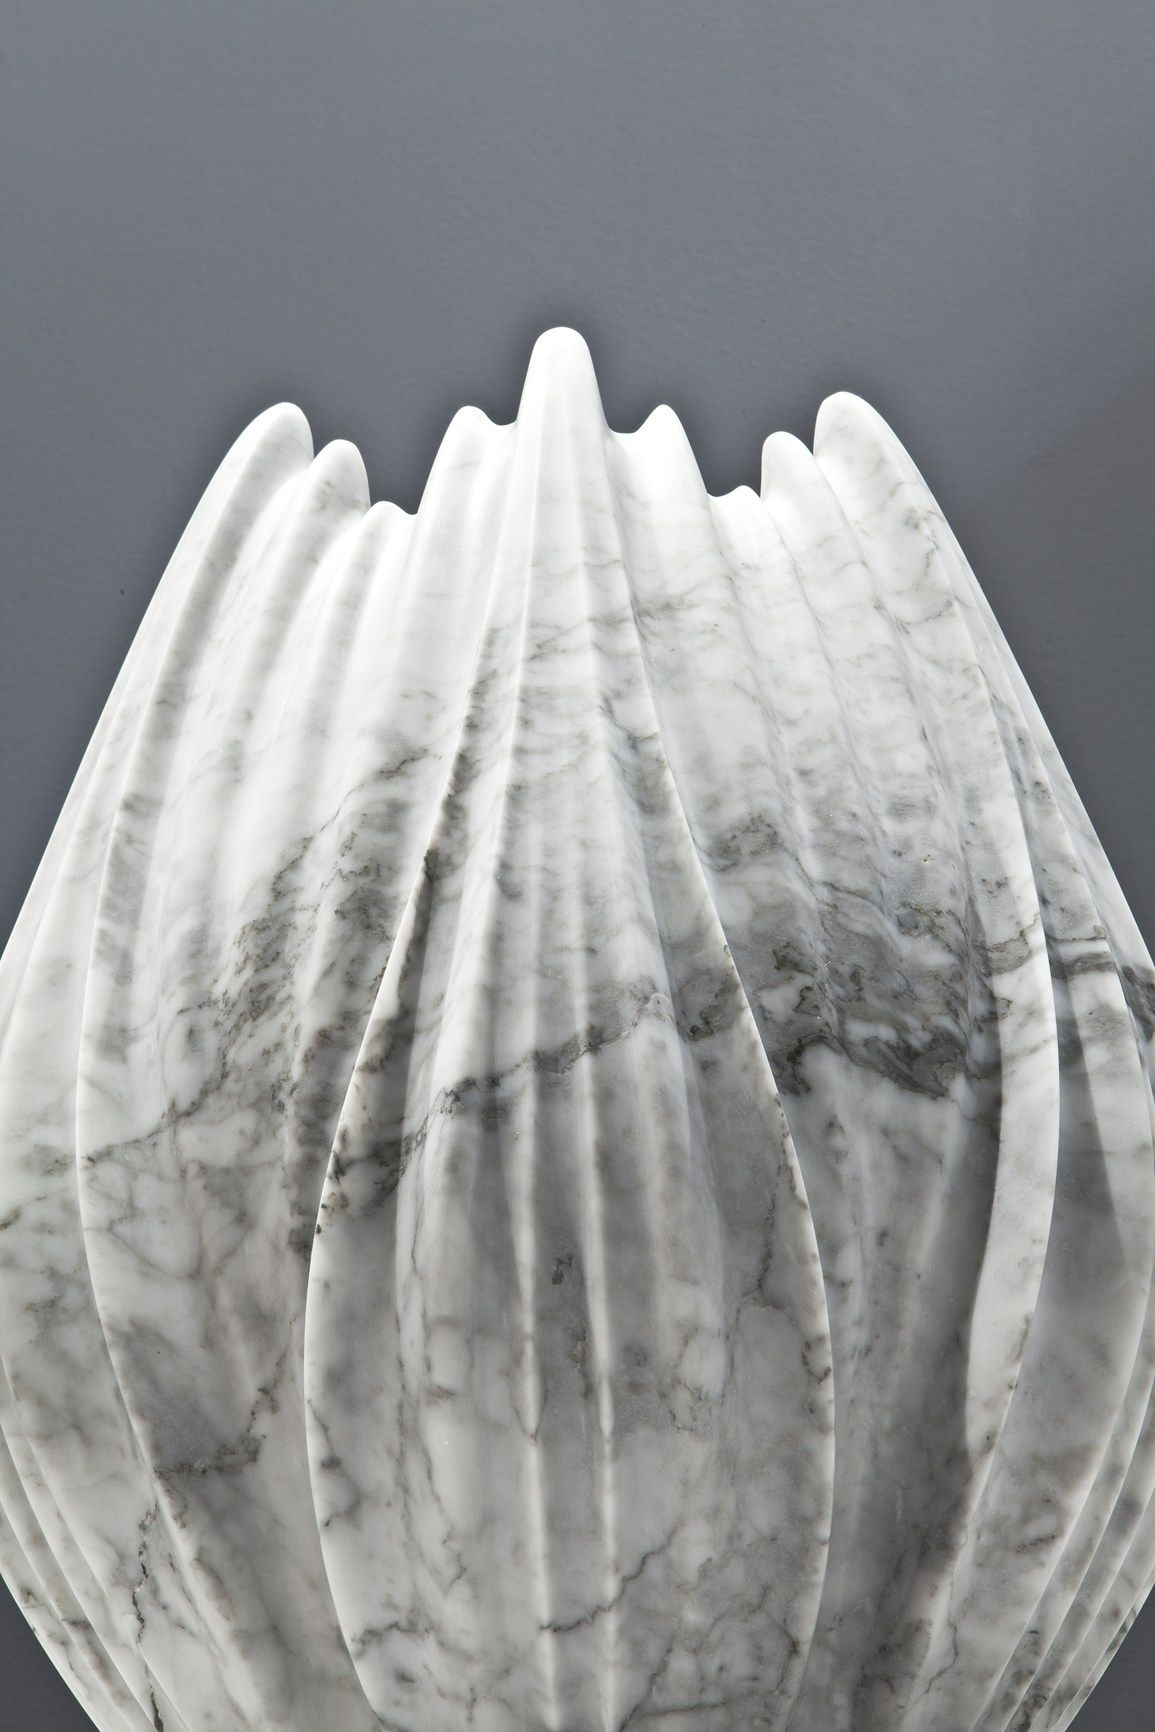 The Solidity Of Metamorphic Rock Becomes Soft And Delicate